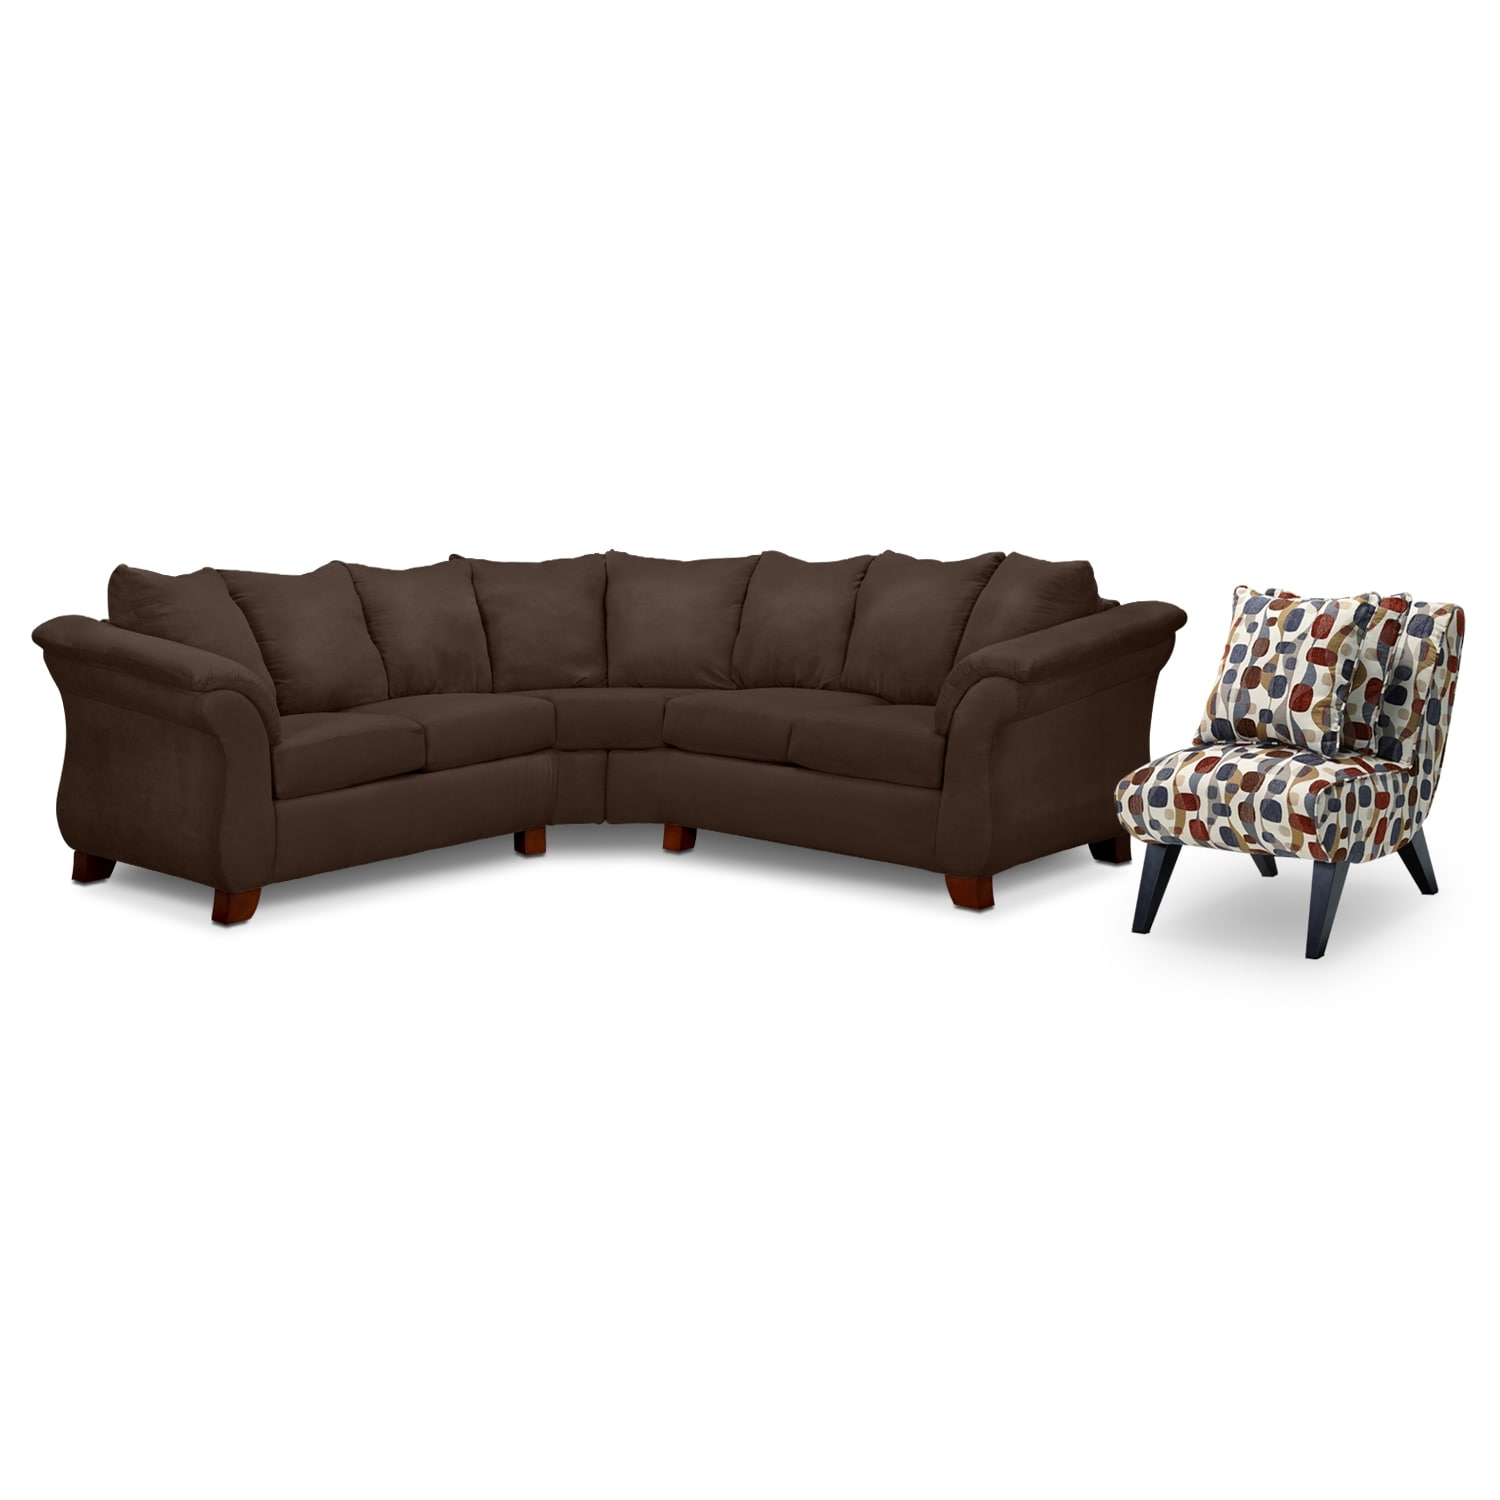 Adrian 2 Piece Sectional and Accent Chair Set Chocolate